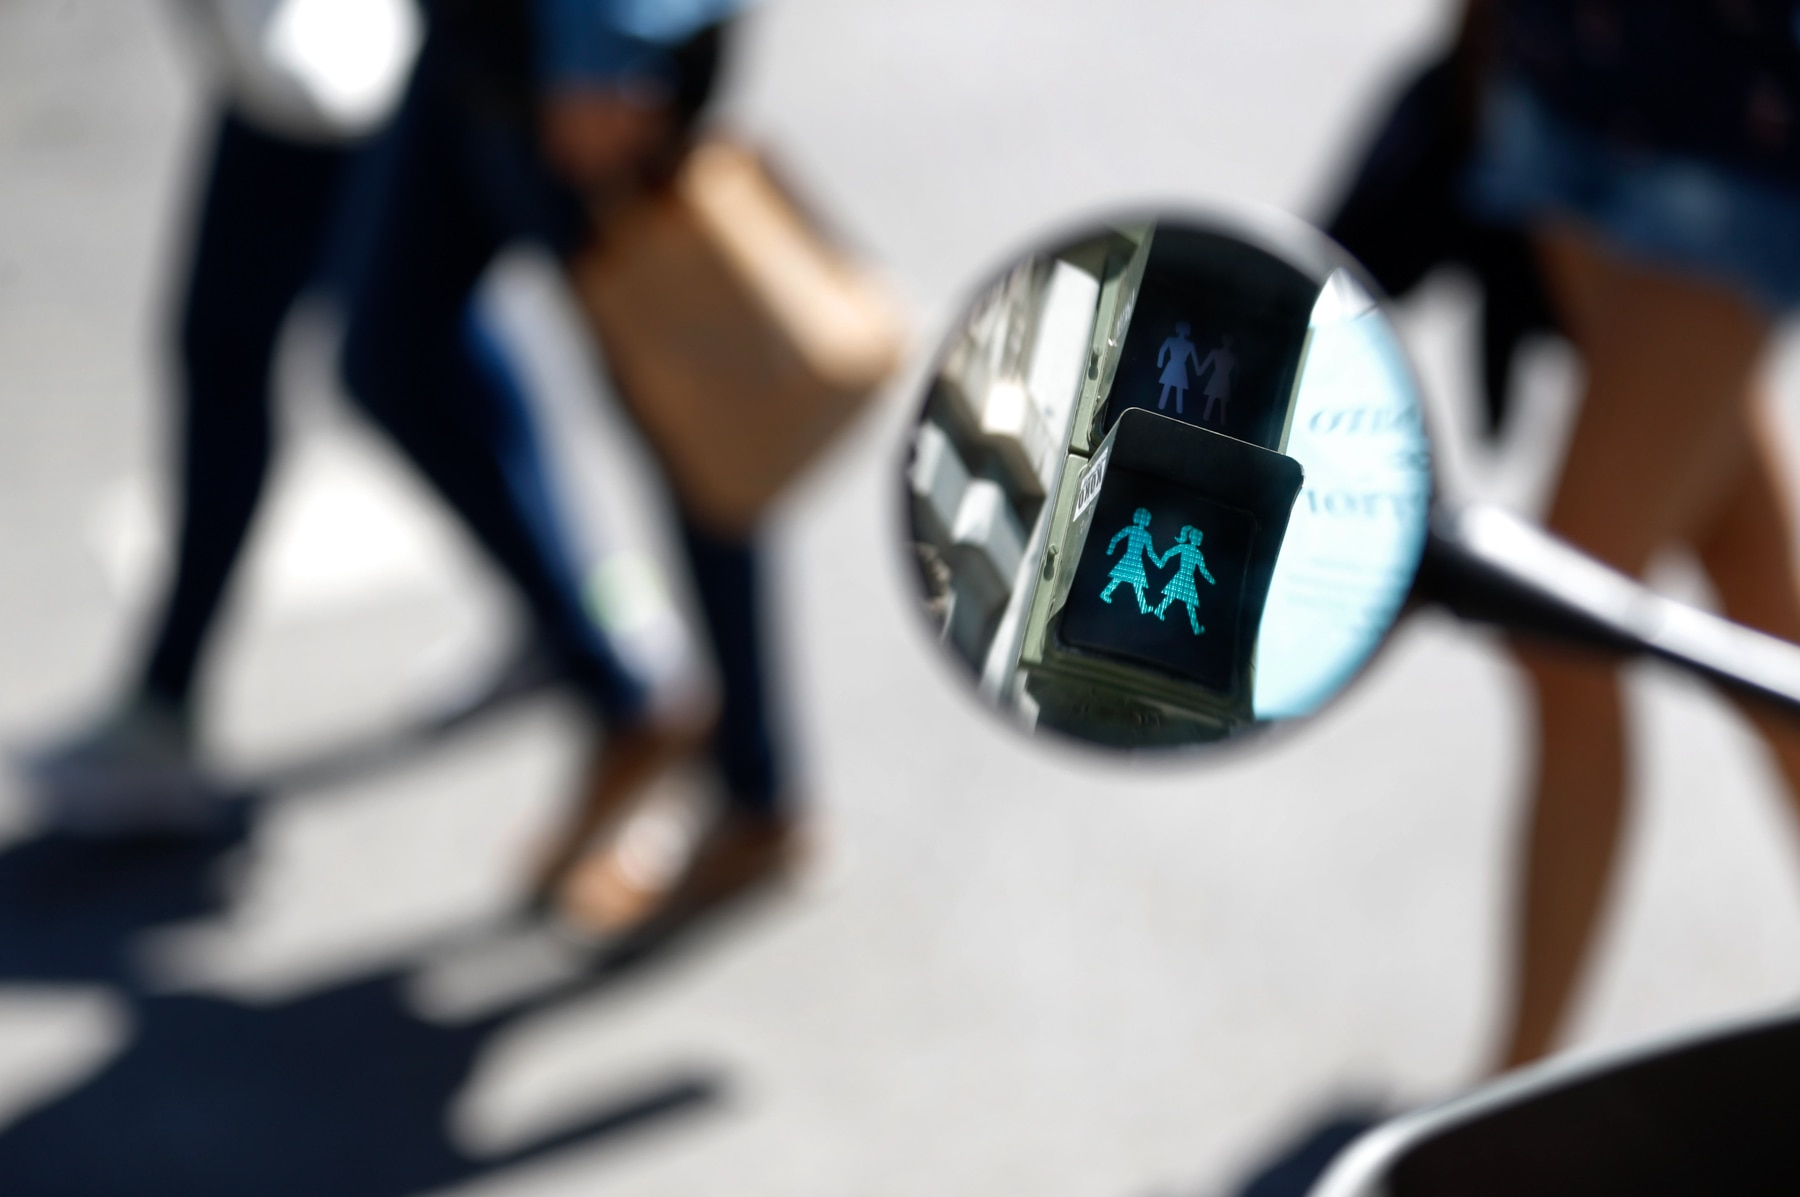 Traffic light reflected in mirror and displaying symbols for two women holding hands (© AP Images)